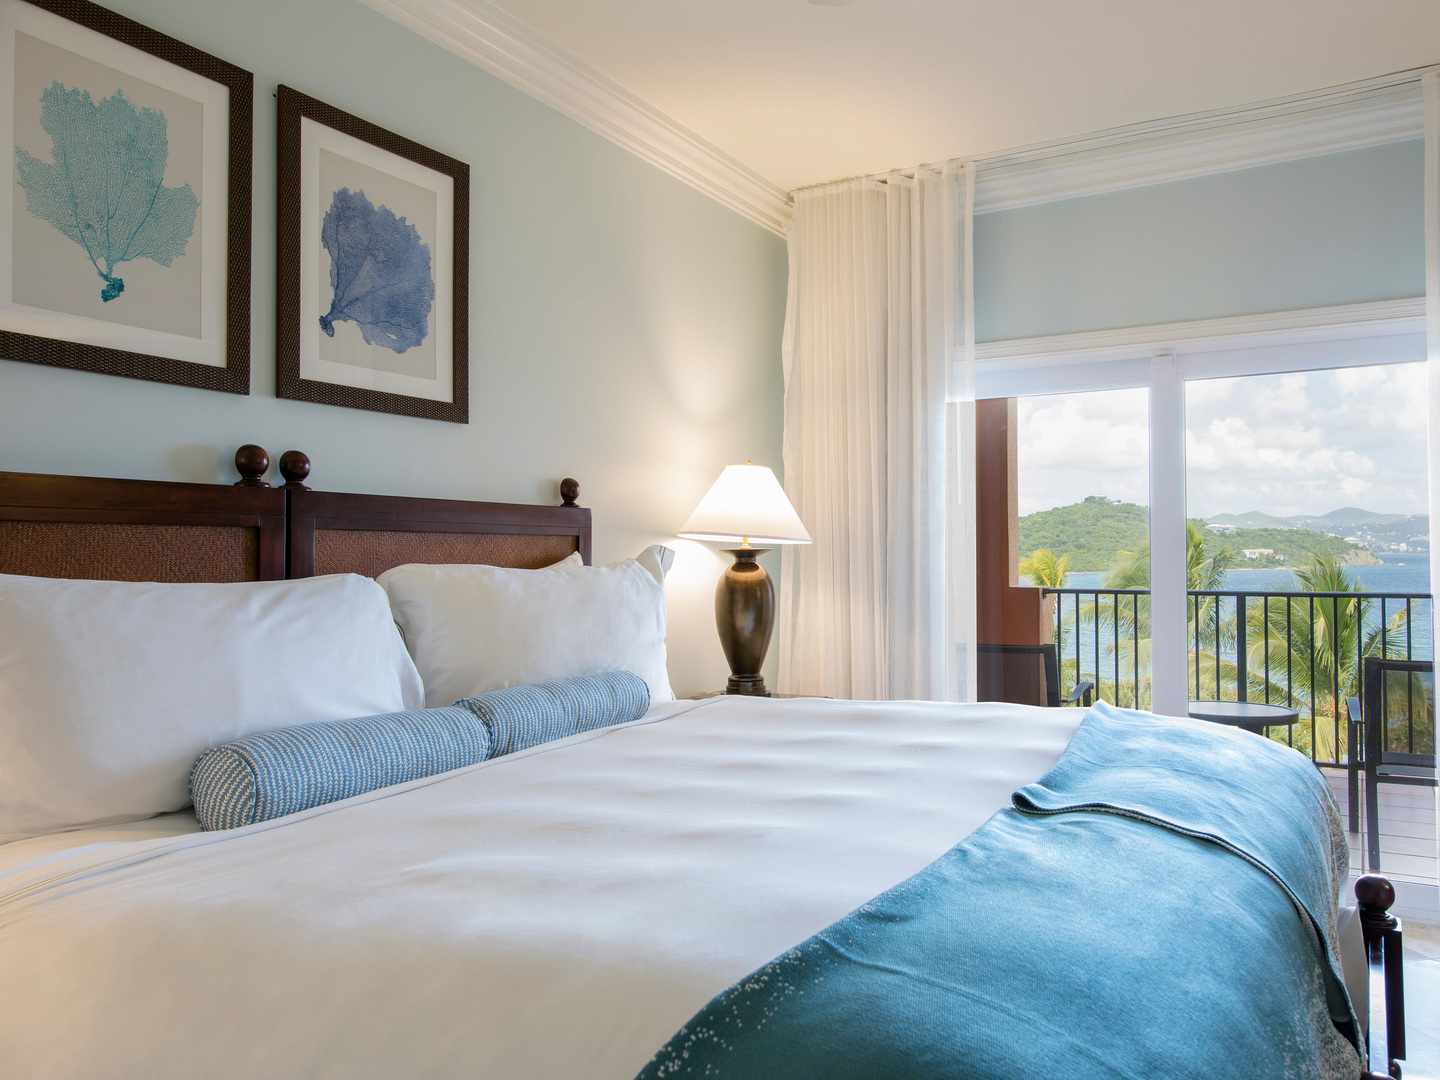 The Ritz-Carlton Club<span class='trademark'>®</span>, St. Thomas Residence 2nd Master Bedroom. The Ritz-Carlton Club<span class='trademark'>®</span>, St. Thomas is located in St. Thomas,  Virgin Island U.S..